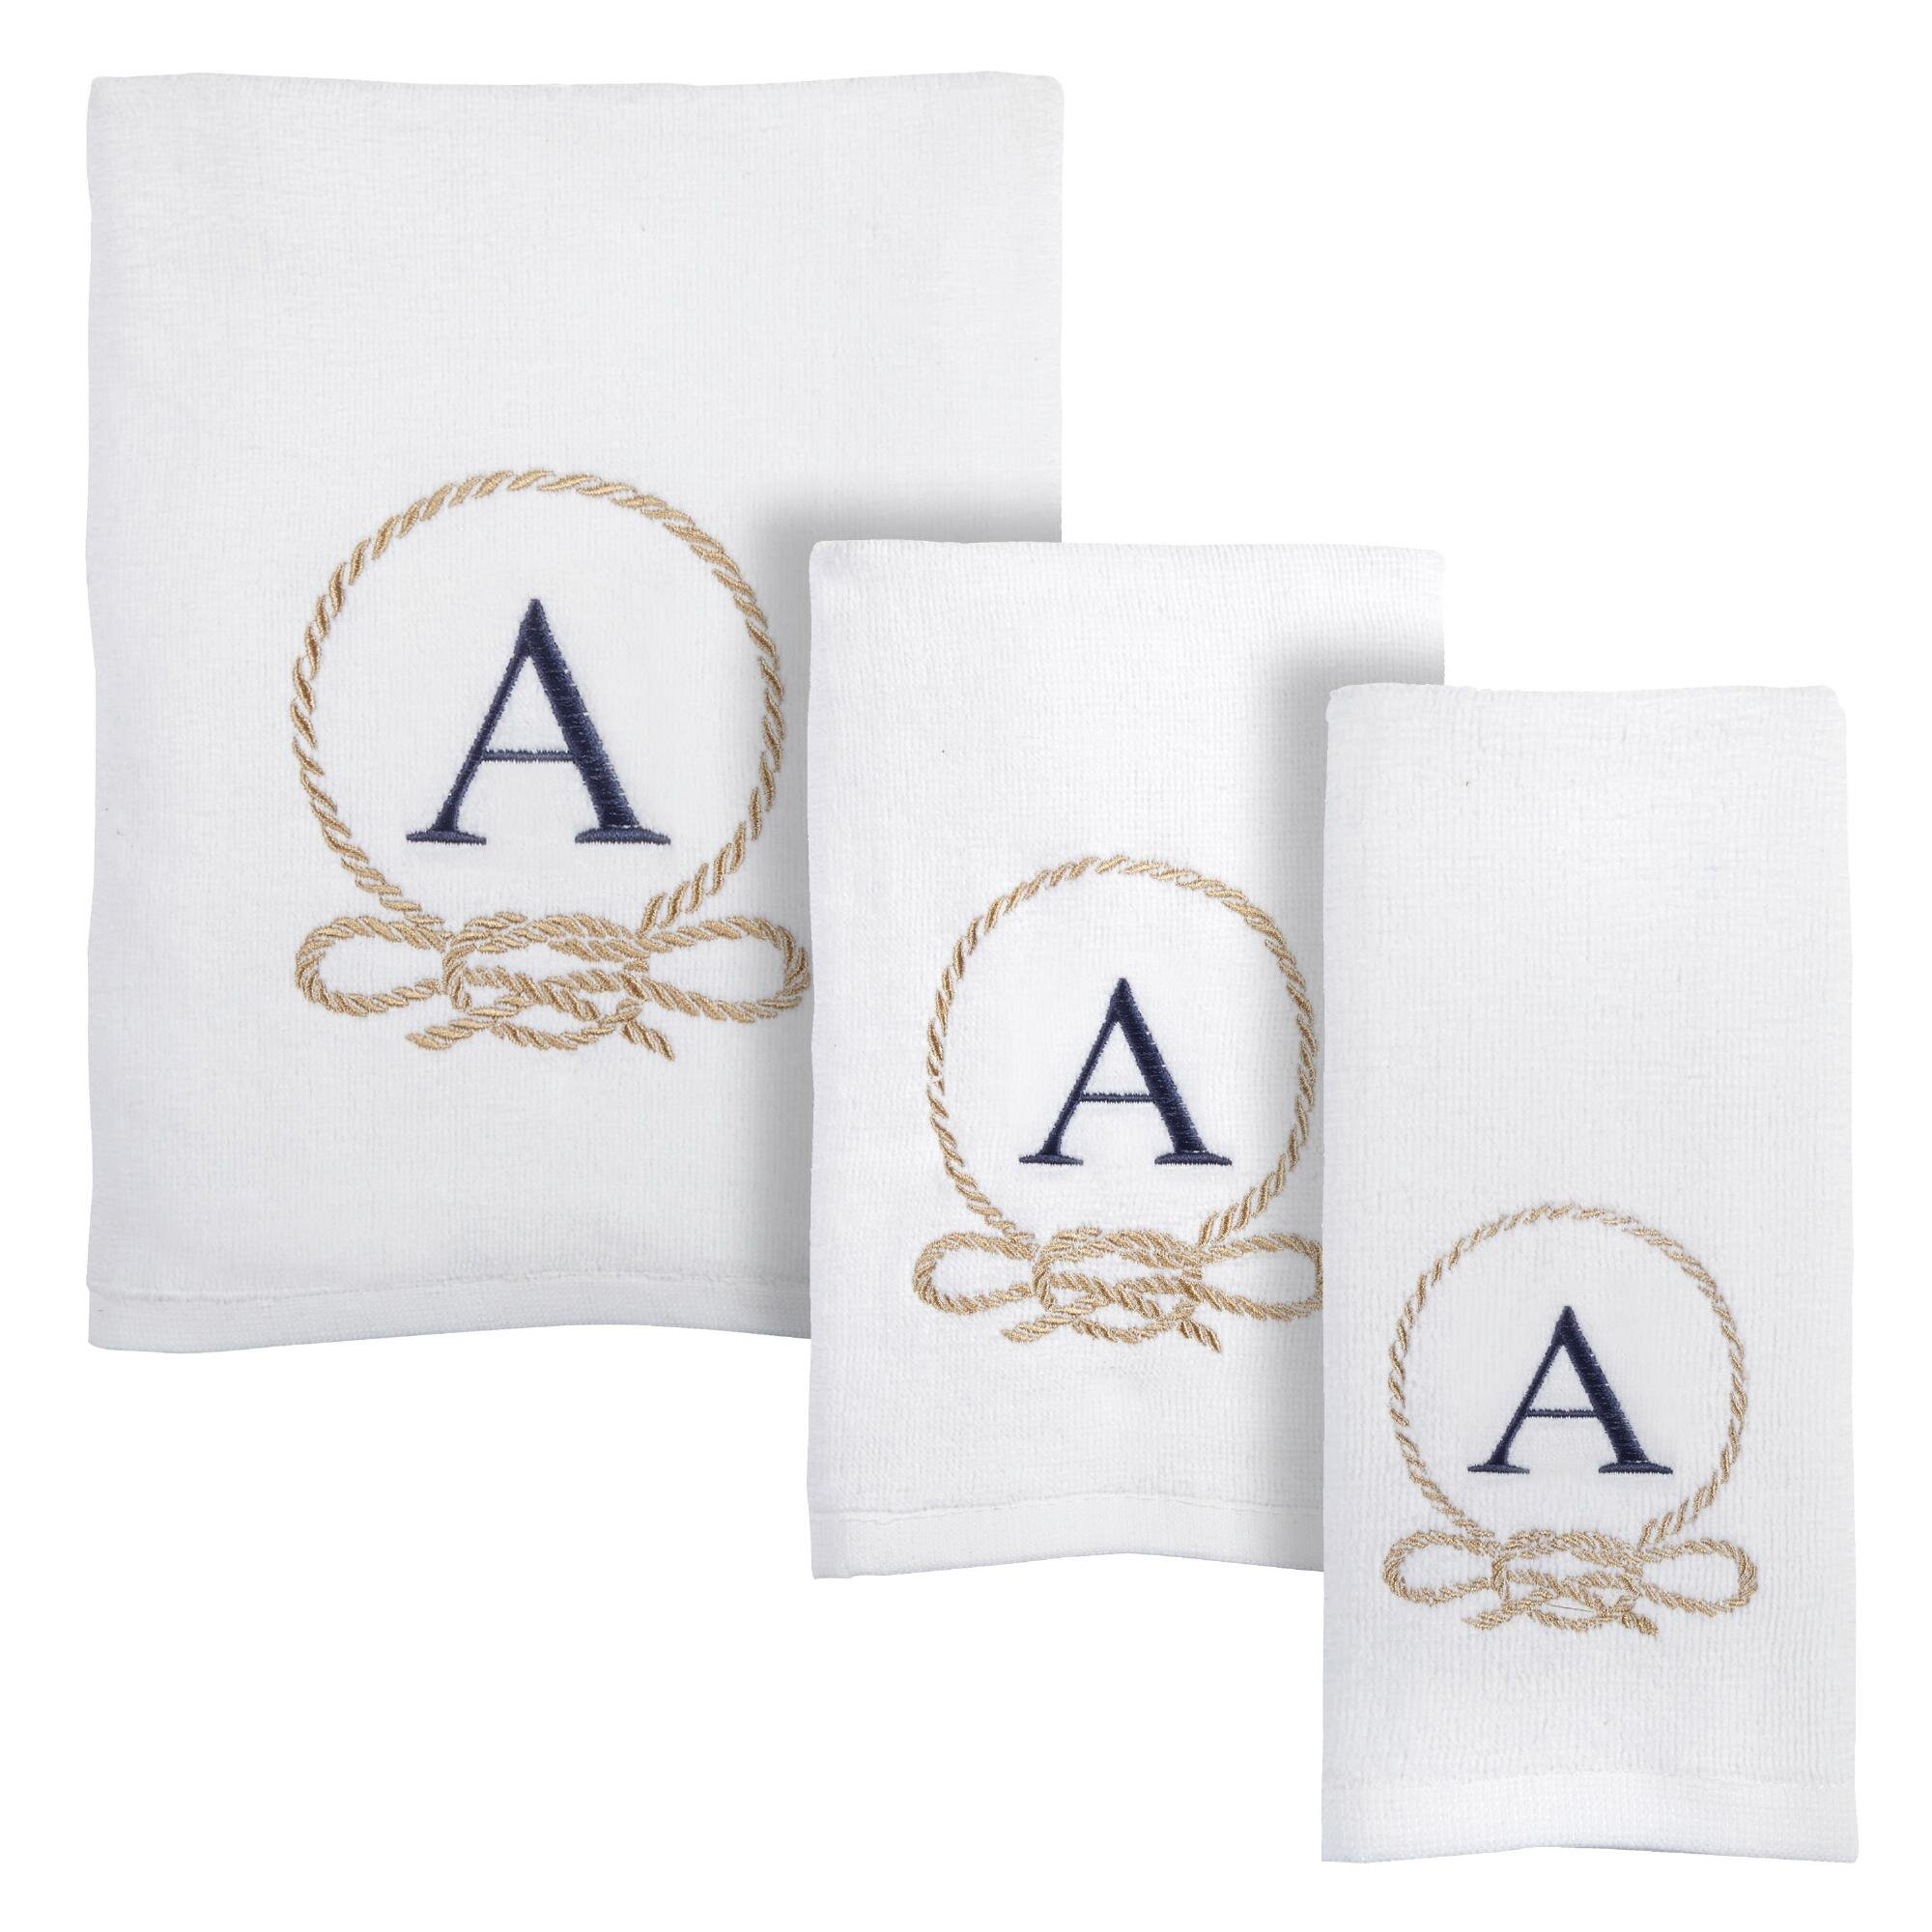 Traditions White Coastal Embroidered Monogram Towel Collection, 3-Piece Set, Bath, Hand and Fingertip Towels (Letter D)